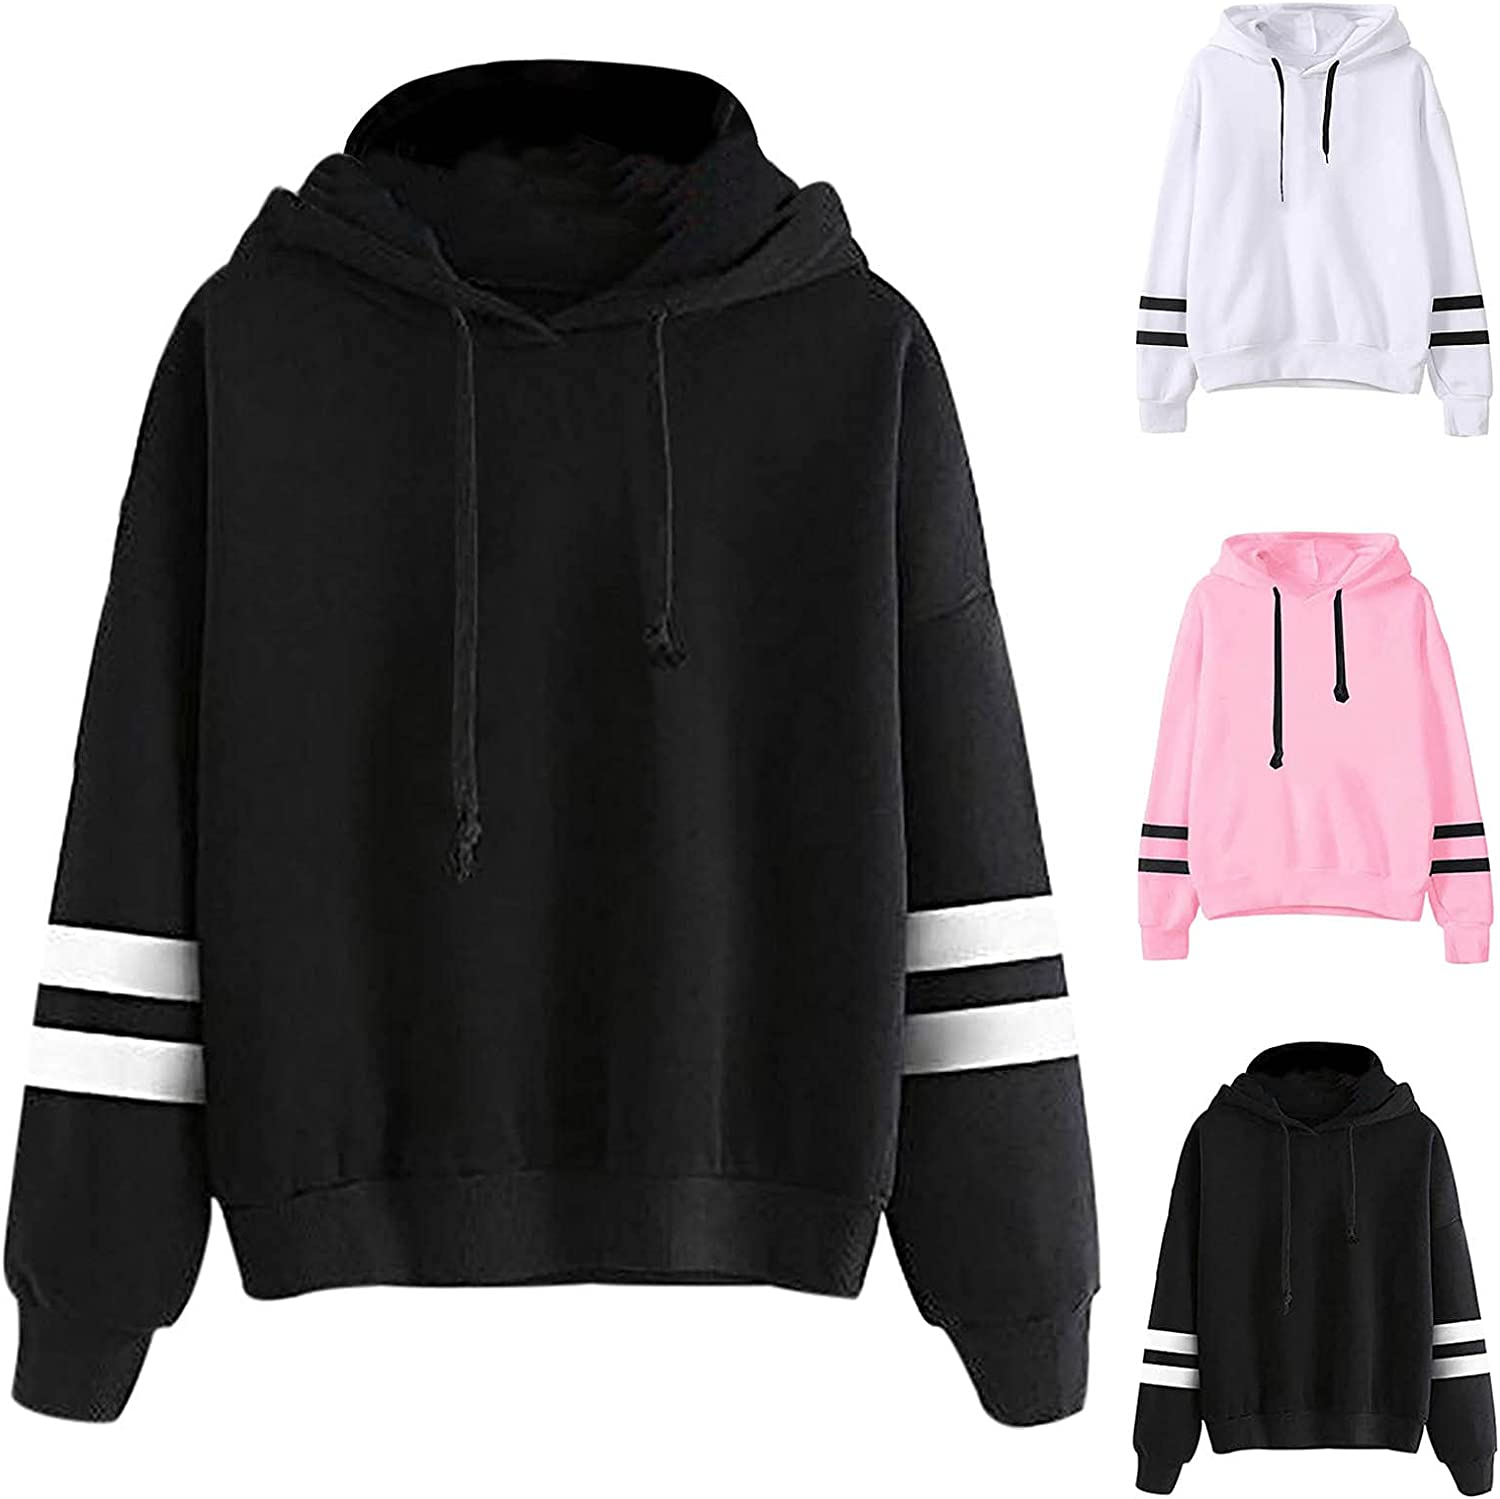 Womens Hoodies Pullover Long Sleeve Shirts Solid Color Pullover Drawstring Tops Fashion Loose Blouse